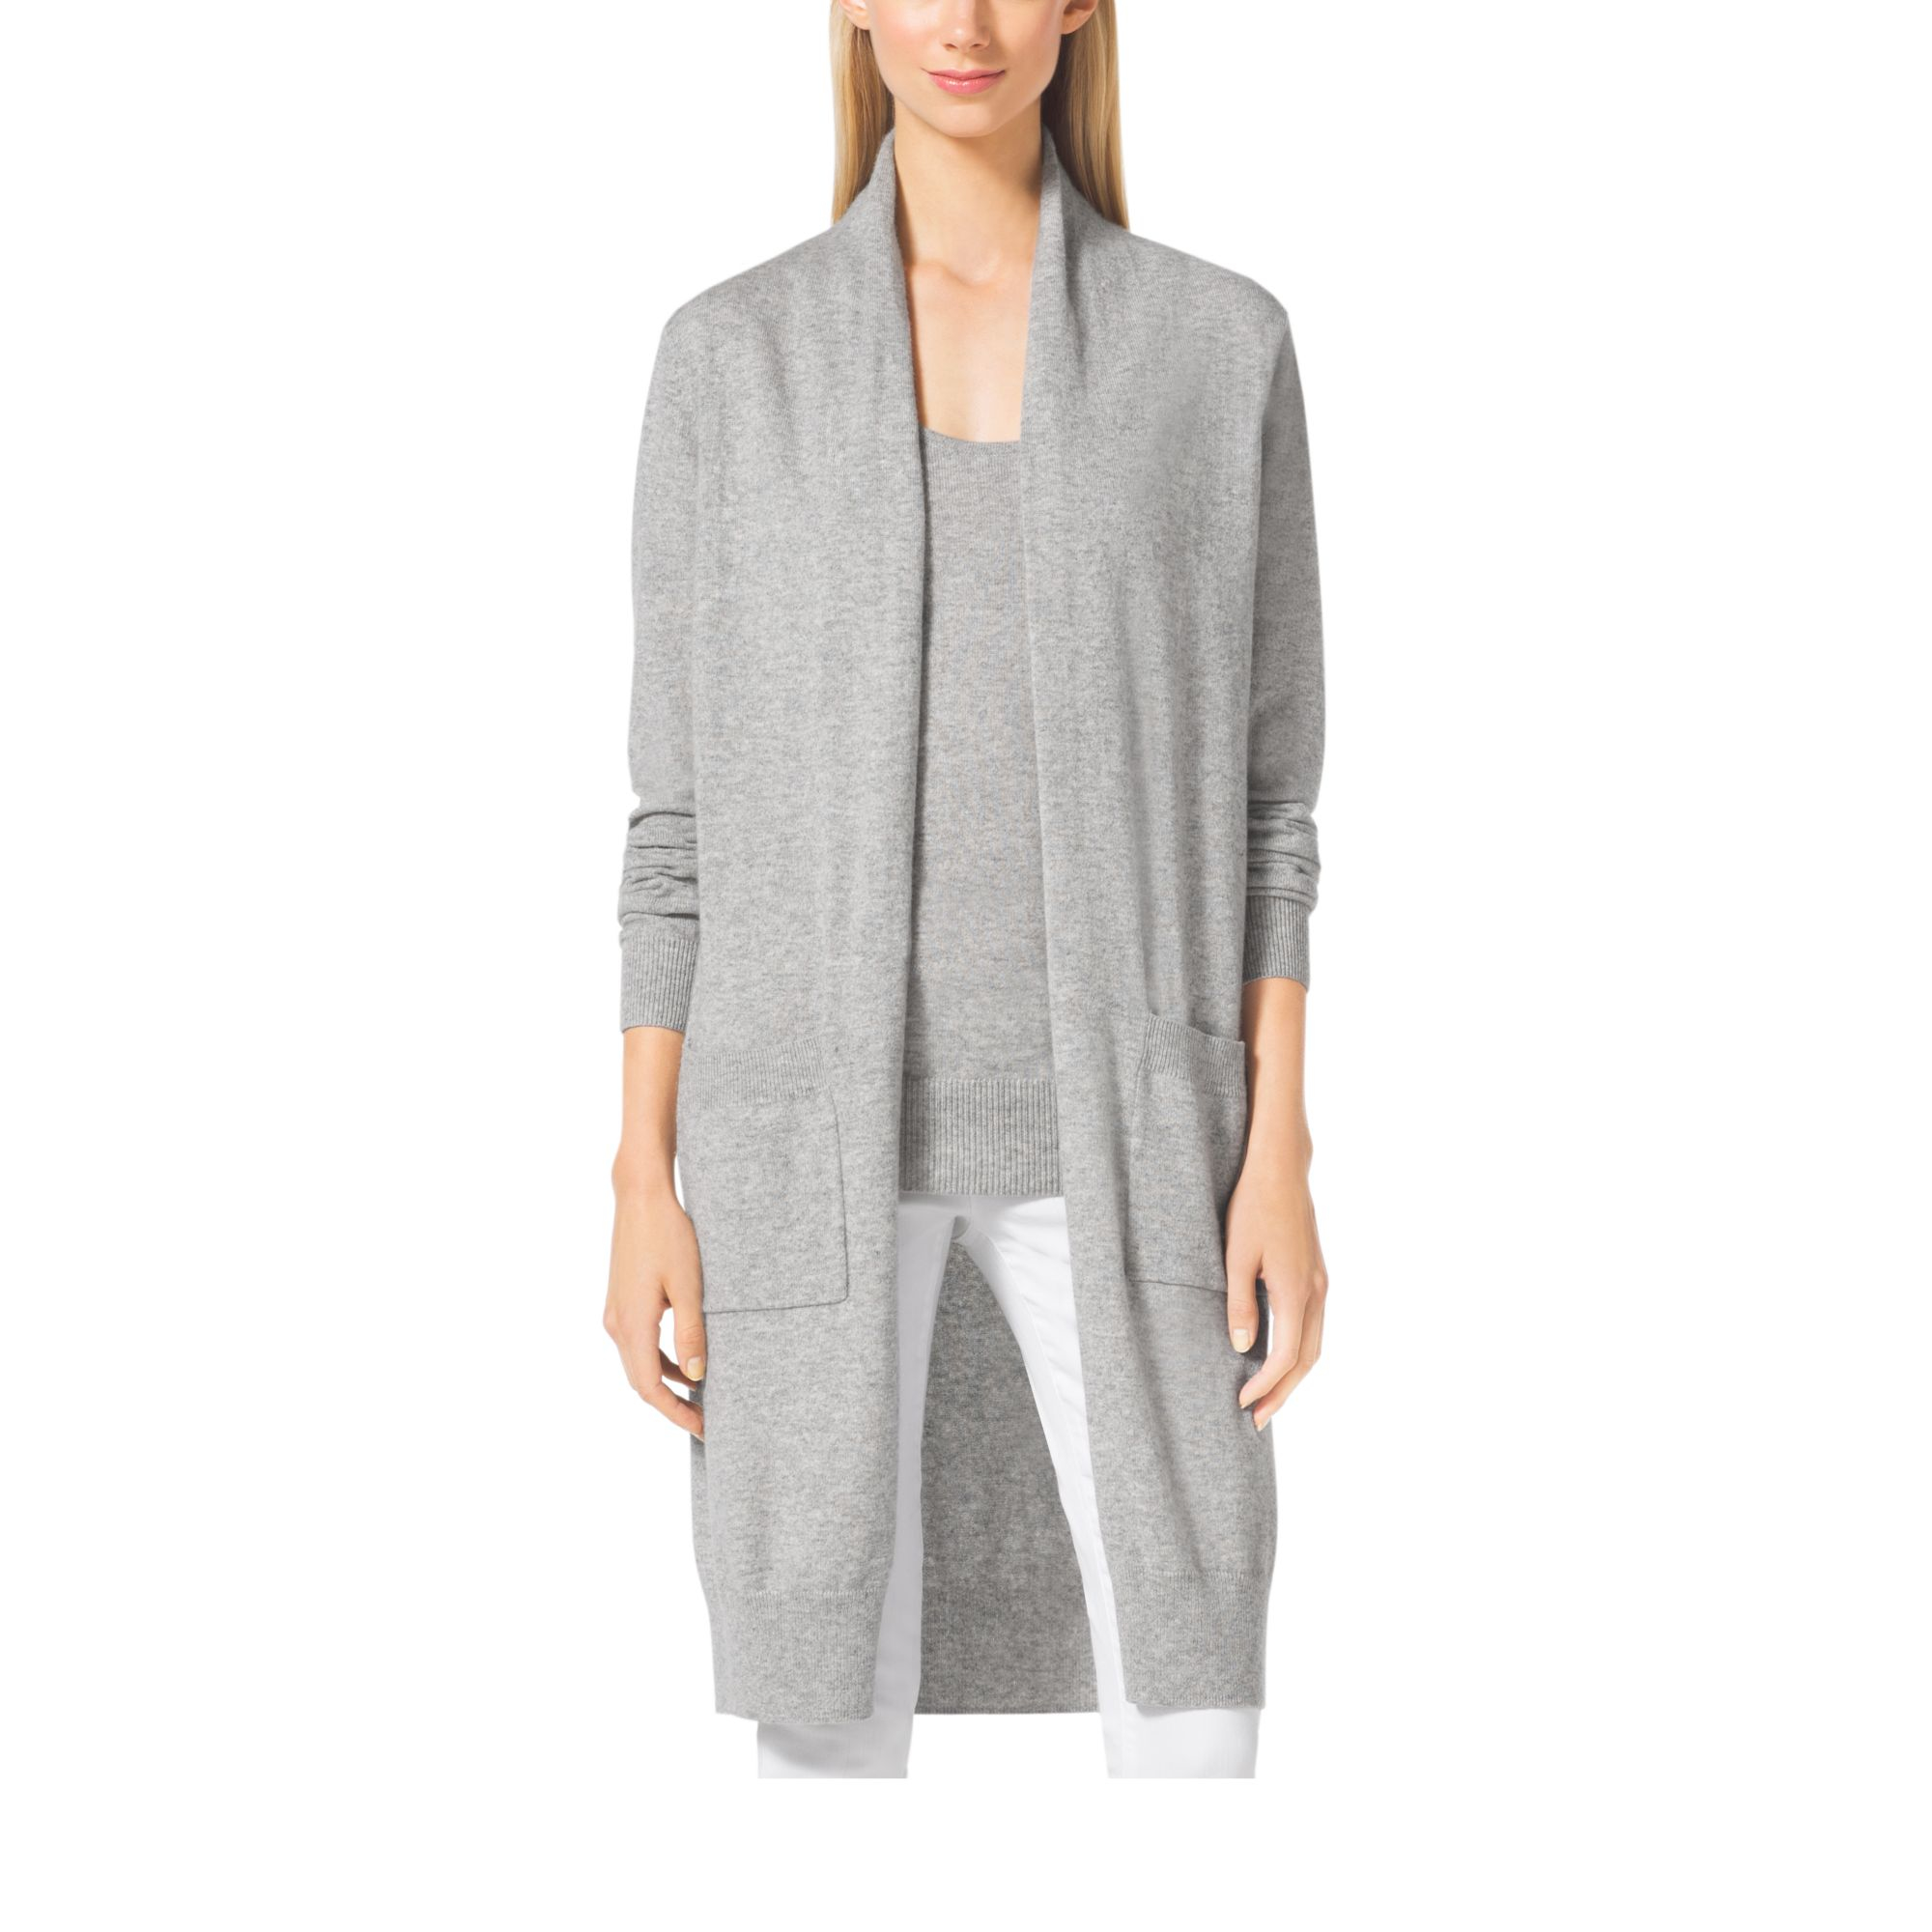 509d661c7c5c Michael Kors Merino Wool And Cashmere Cardigan in Gray - Lyst